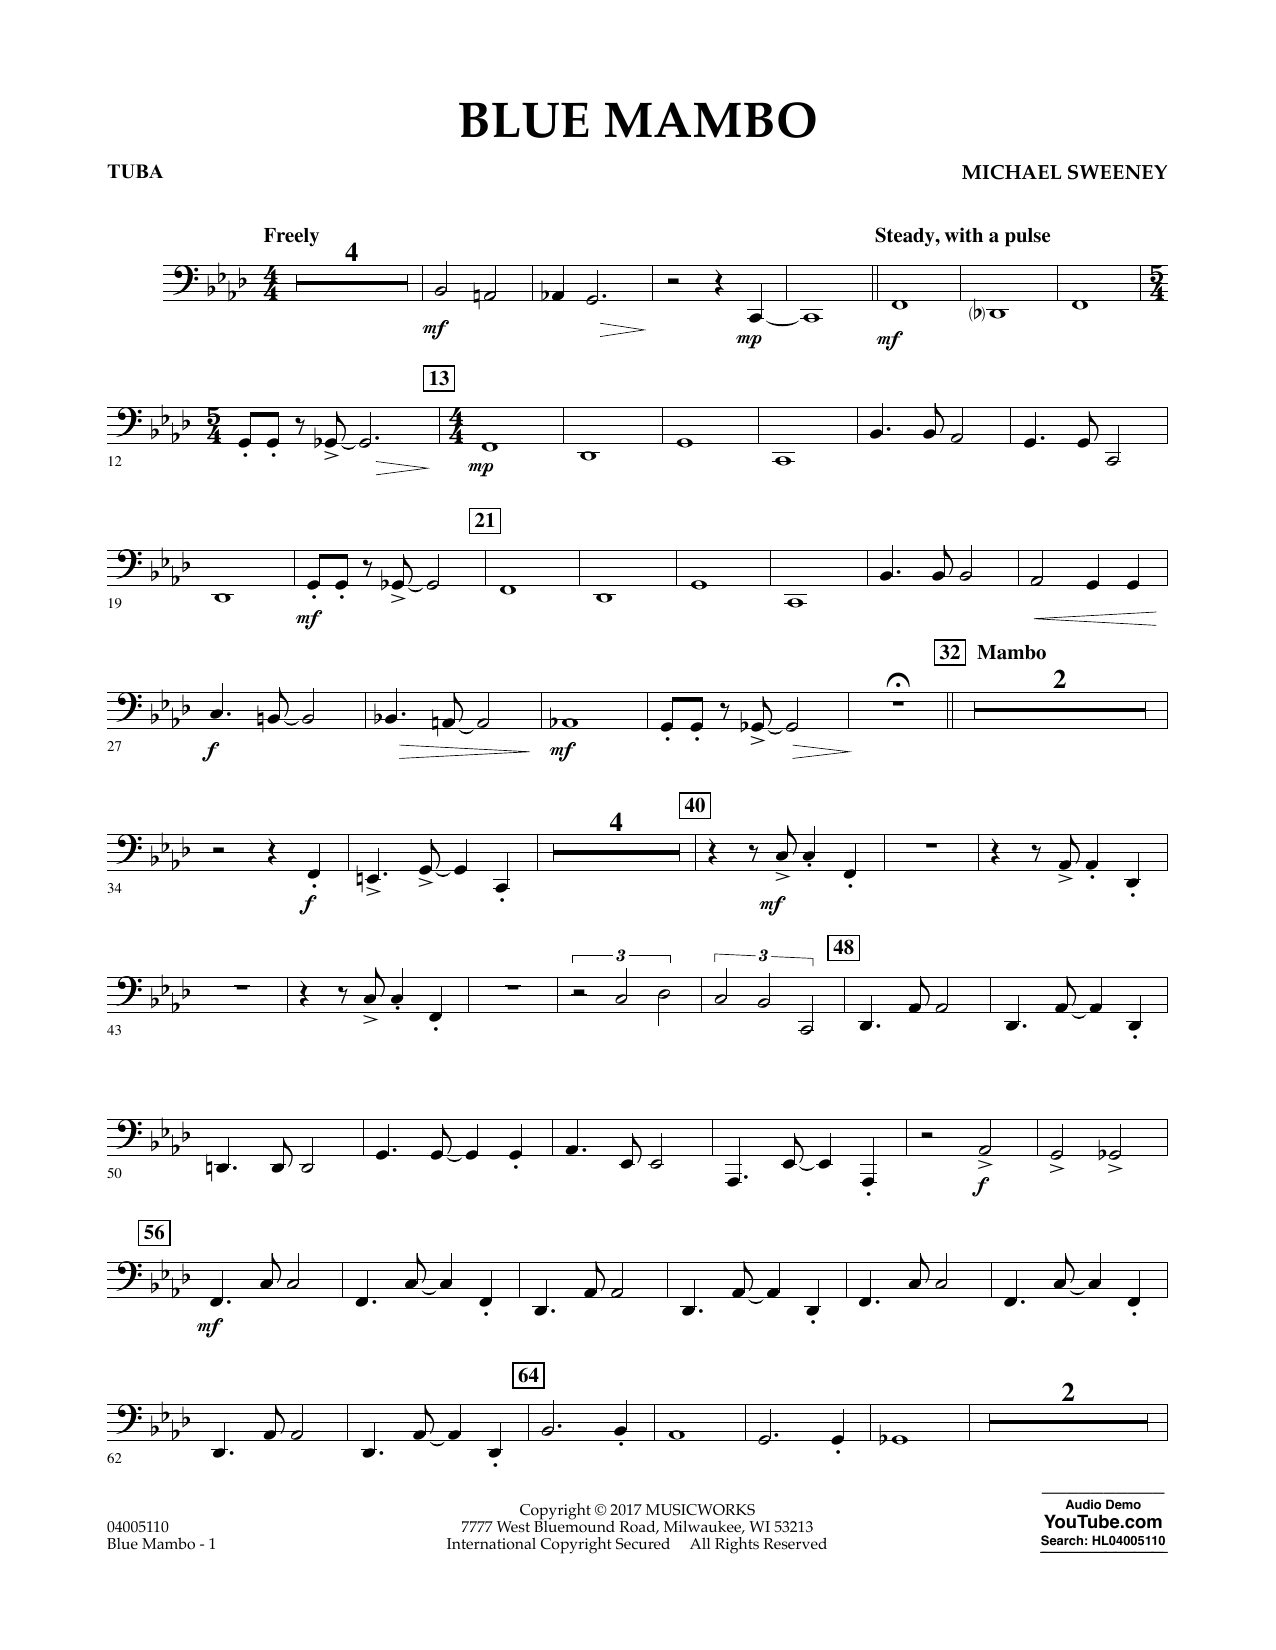 Michael Sweeney Blue Mambo - Tuba sheet music notes and chords. Download Printable PDF.